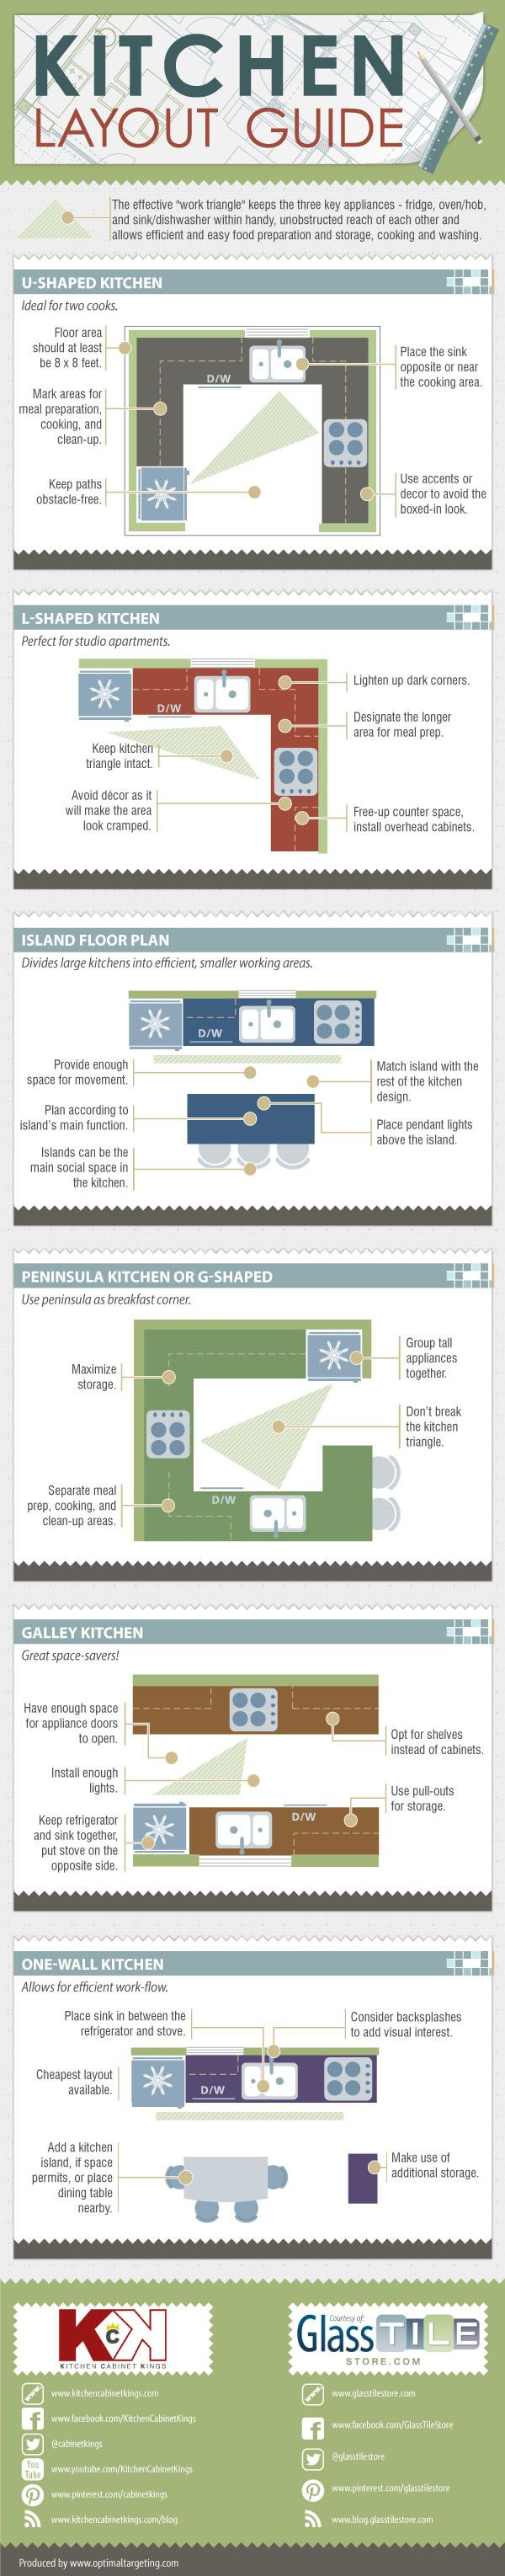 The 6 Best Kitchen Layouts To Consider For Your Renovation